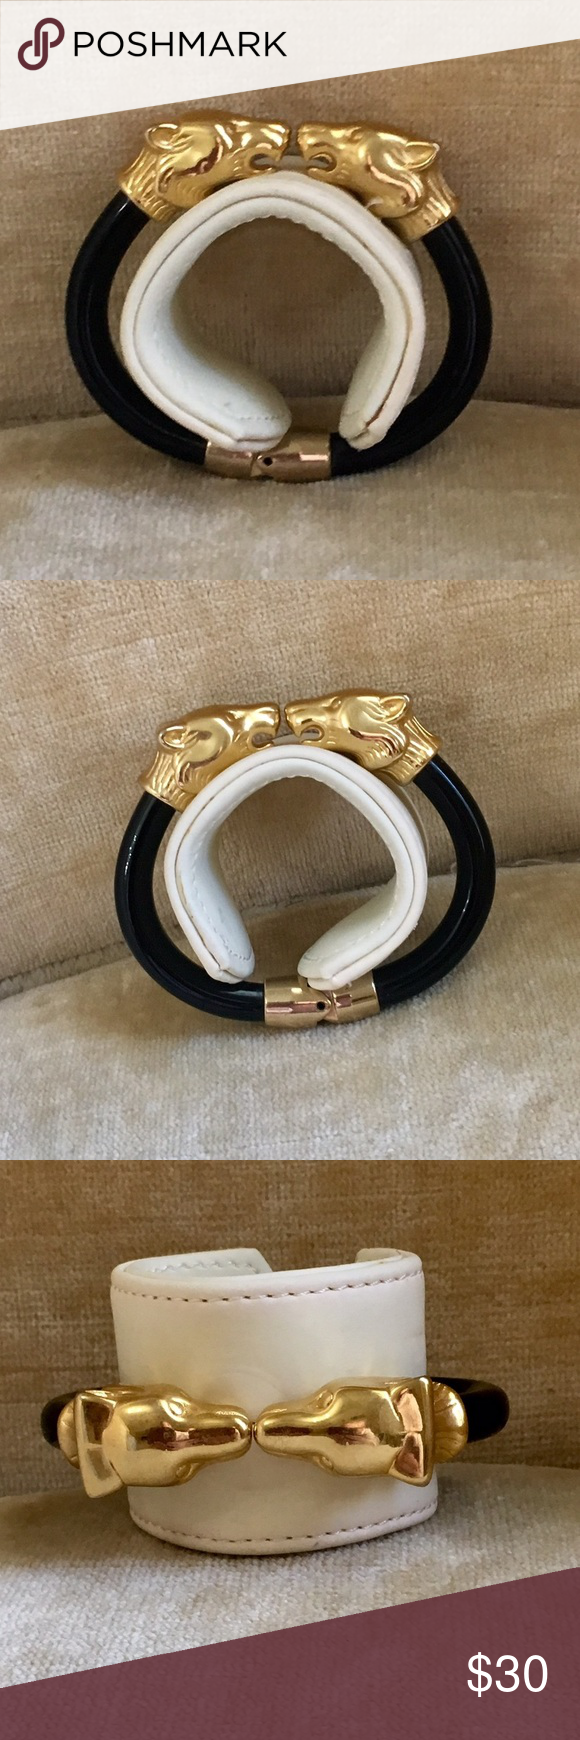 "🎉Sale!Vintage Double Panther Head Bracelet Vintage item from the 1980s This vintage double panther head clamp bracelet in gold tone metal and black lucite. The bracelet measures about 2.55"" (6.5 cm) across the interior and is 0.3"" (0.7 cm) wide. The panther heads part is about 2.4"" (6 cm) long.  The bracelet is in excellent vintage condition. The hinge spring is tight. Jewelry Bracelets"